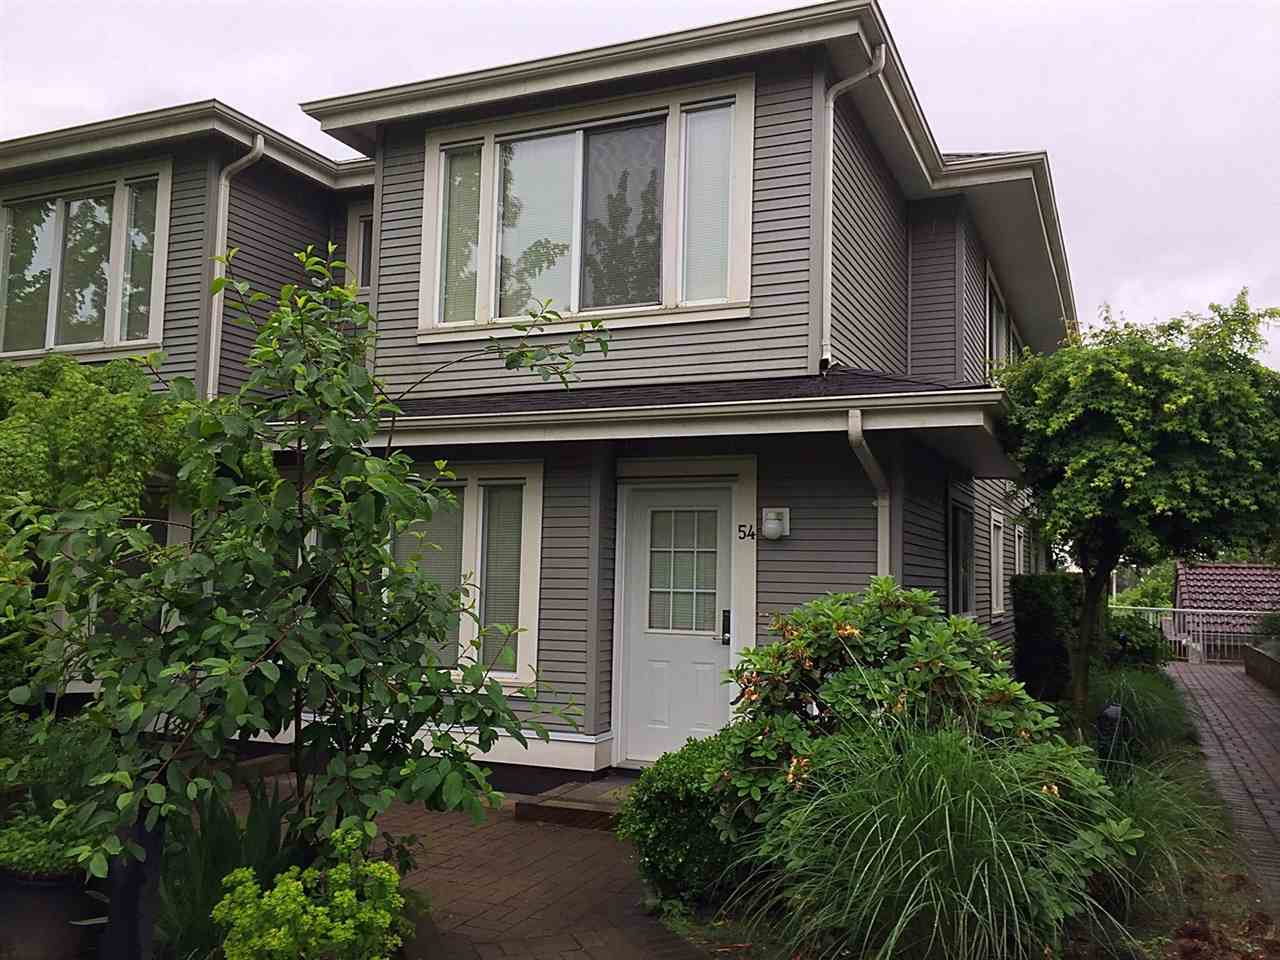 Main Photo: 54 7370 STRIDE Avenue in Burnaby: Edmonds BE Townhouse for sale (Burnaby East)  : MLS(r) # R2171333